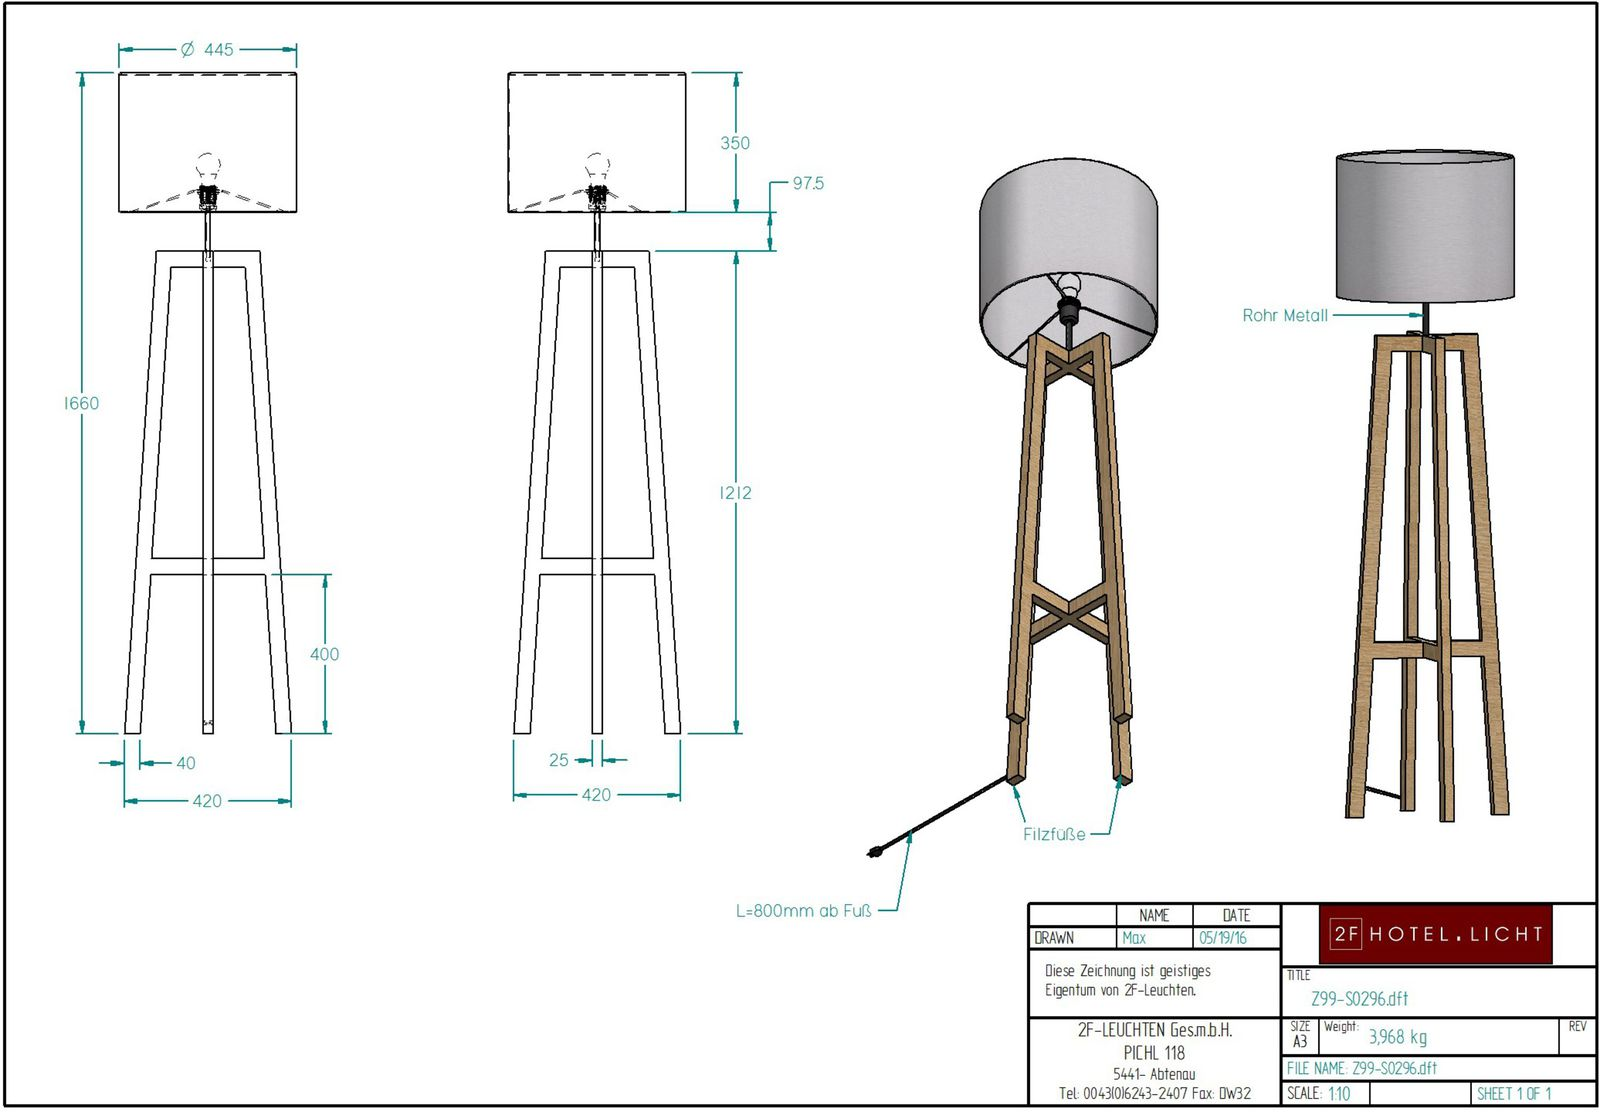 floor lamp, L:420mm, W:420mm,H:1600mm, surface: metall SWM-black matt, techn. Data: 1xw27, LED 9W 2700K / 230V, cable color: textil black